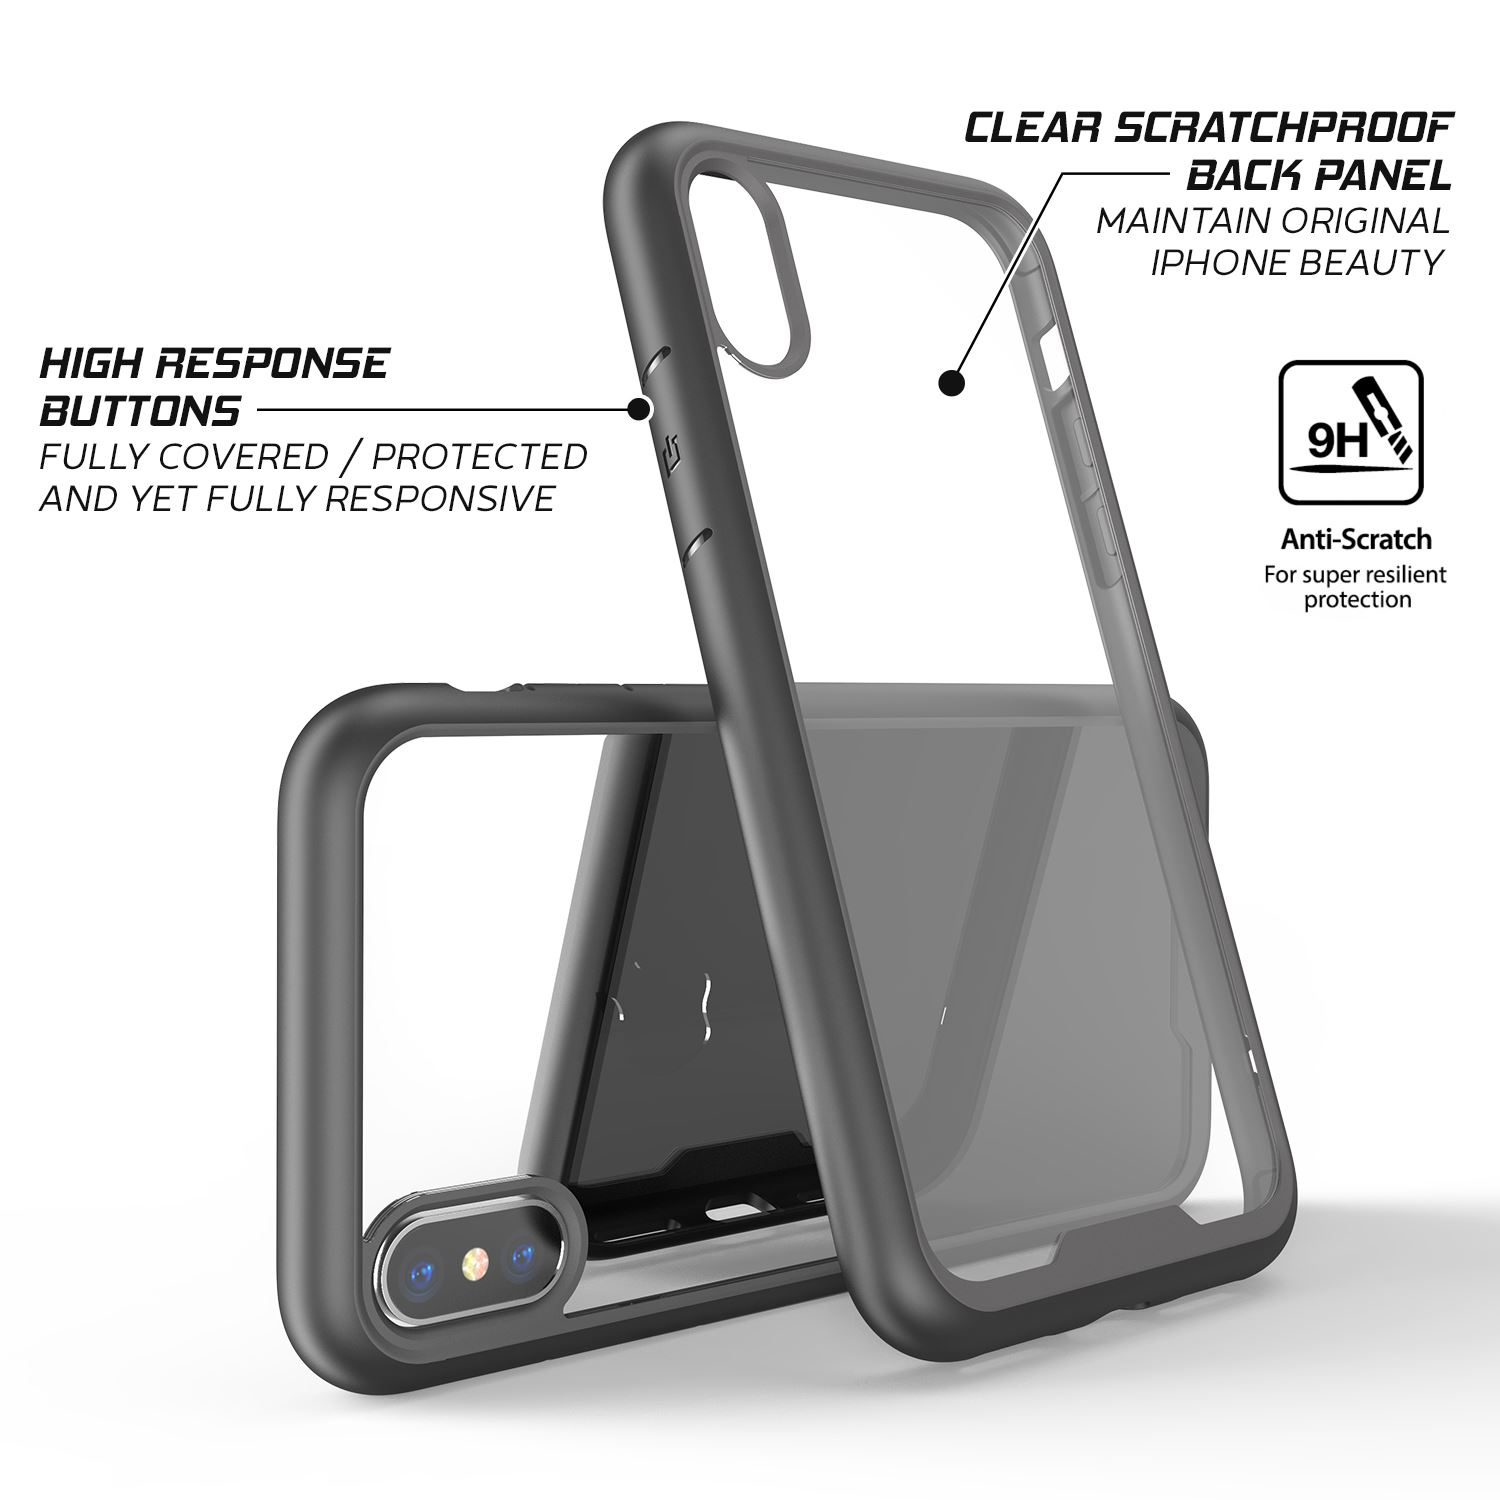 thumbnail 24 - For Apple iPhone XR Xs Max X 8 7 Plus 6 Se 2020 Case Cover Clear Shockproof Thin